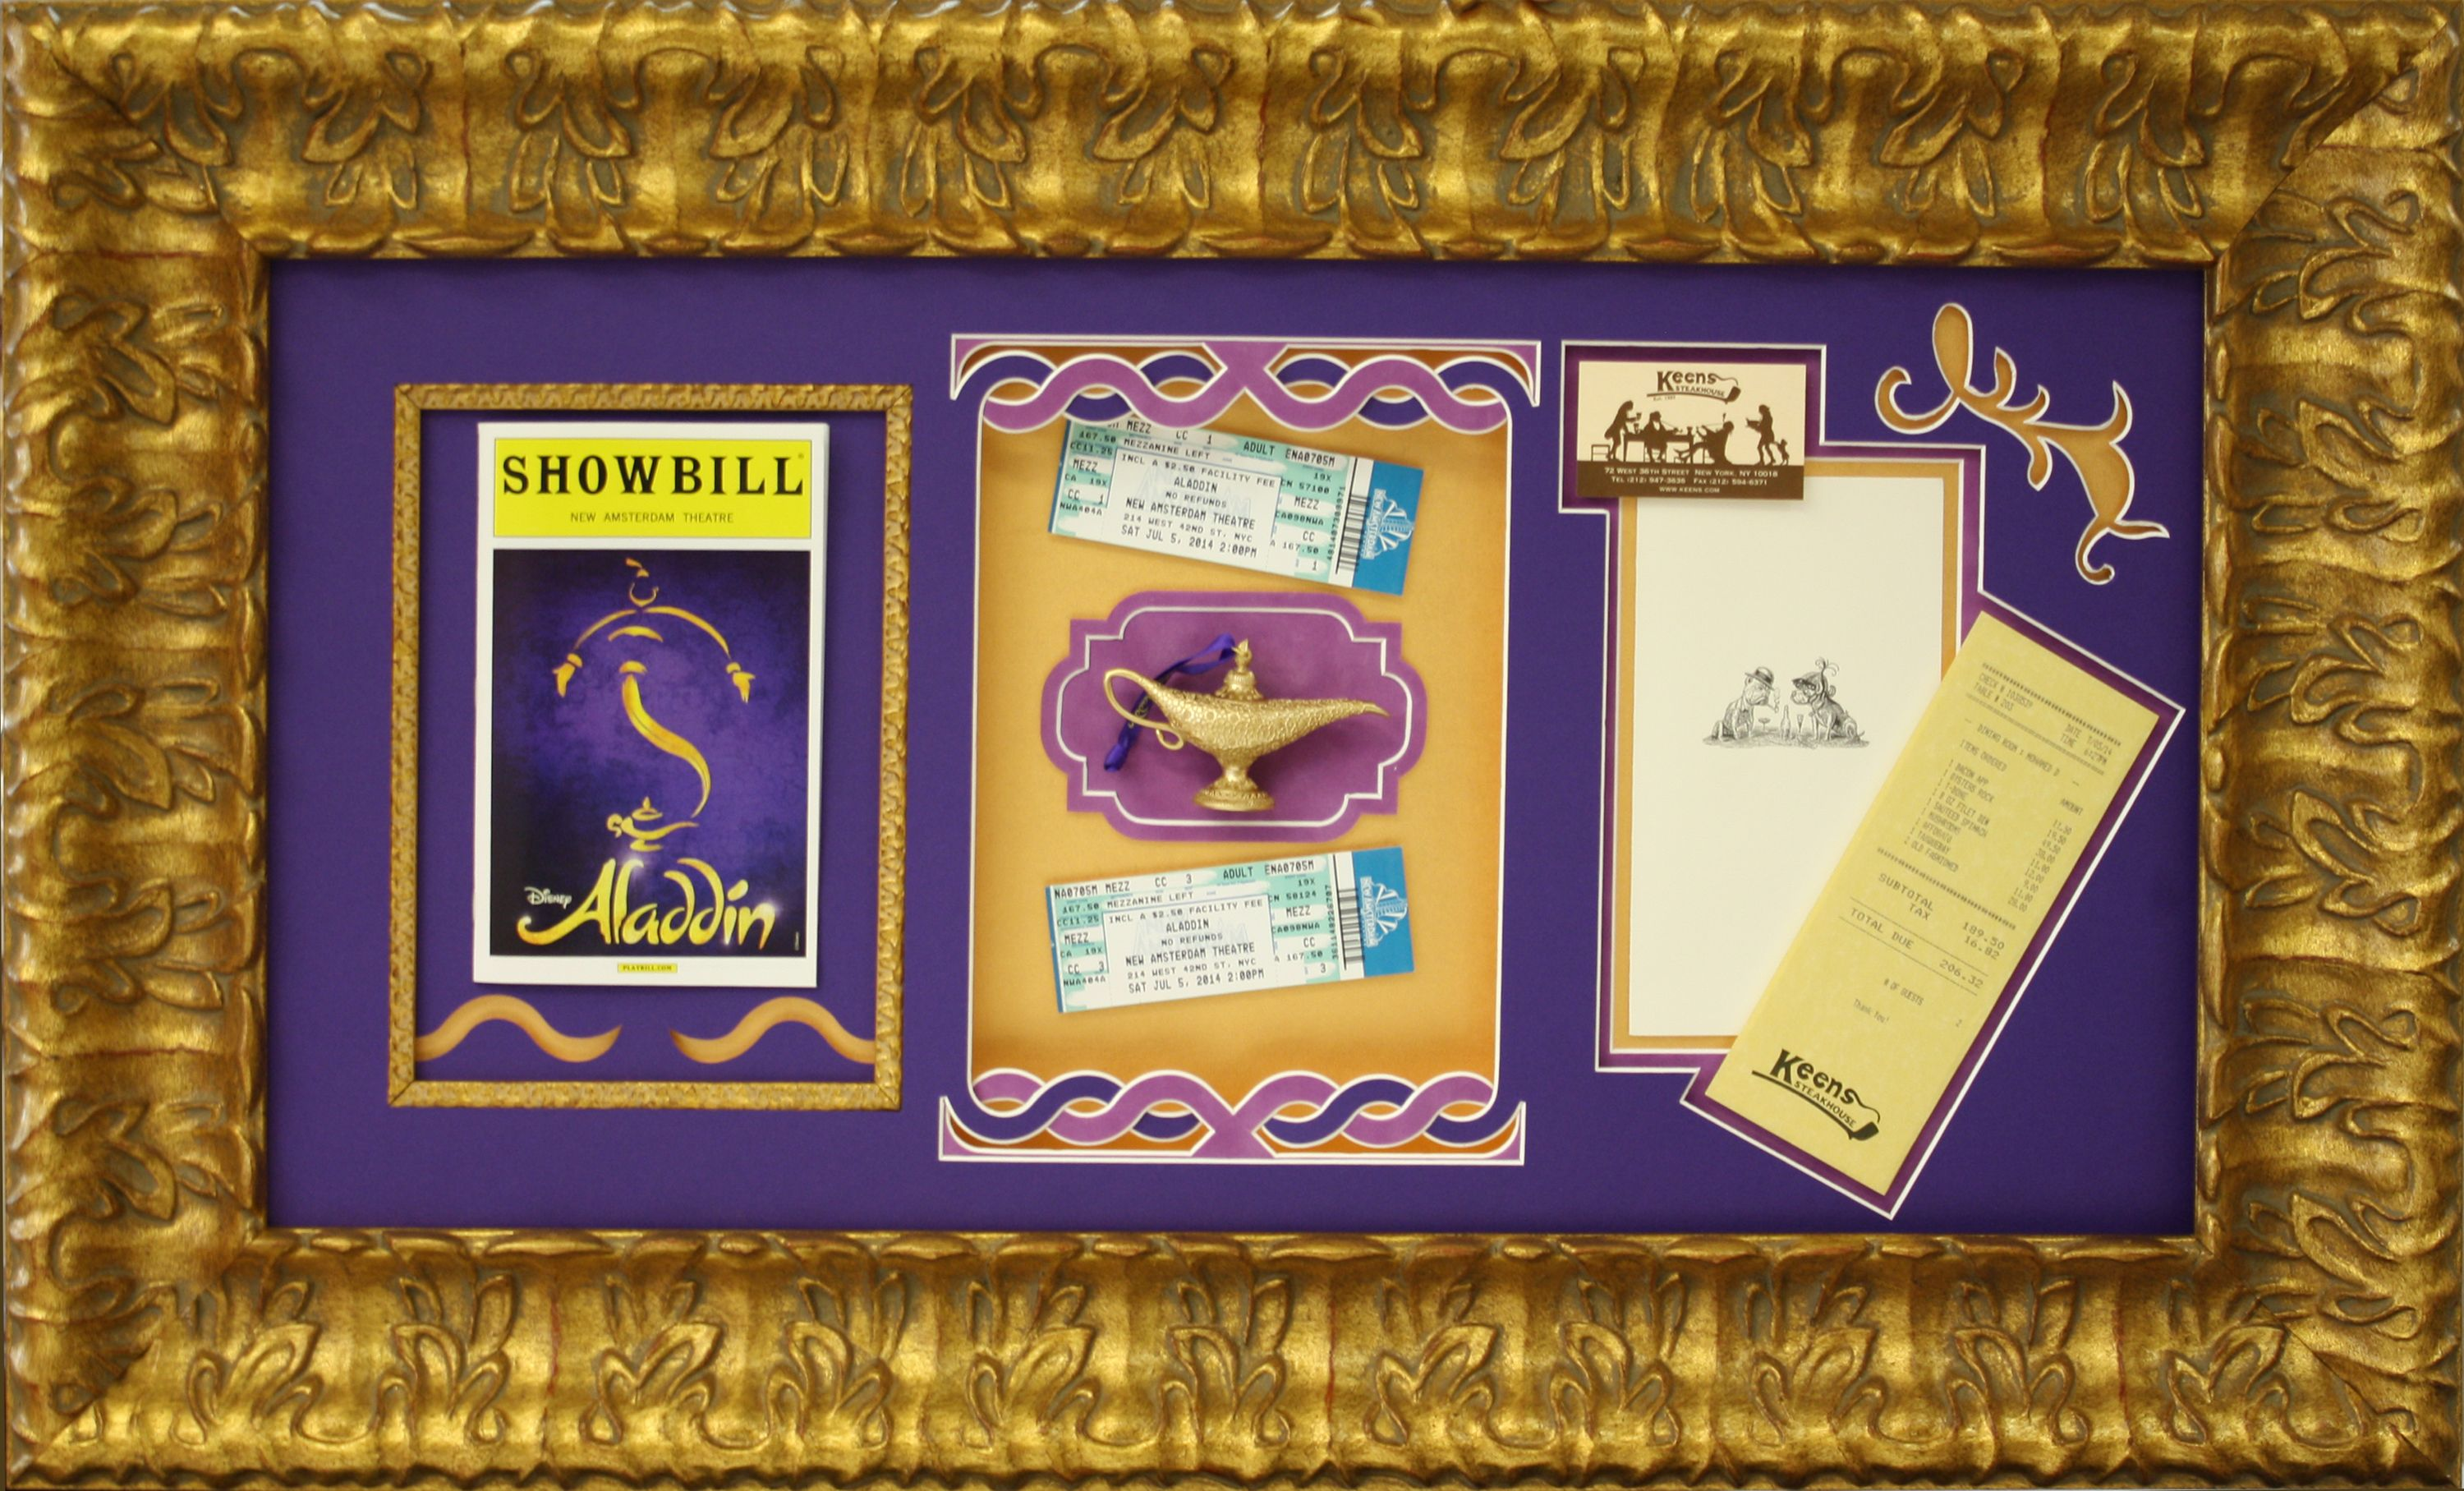 Custom Framed Broadway Aladdin Musical With Playbill And Tickets